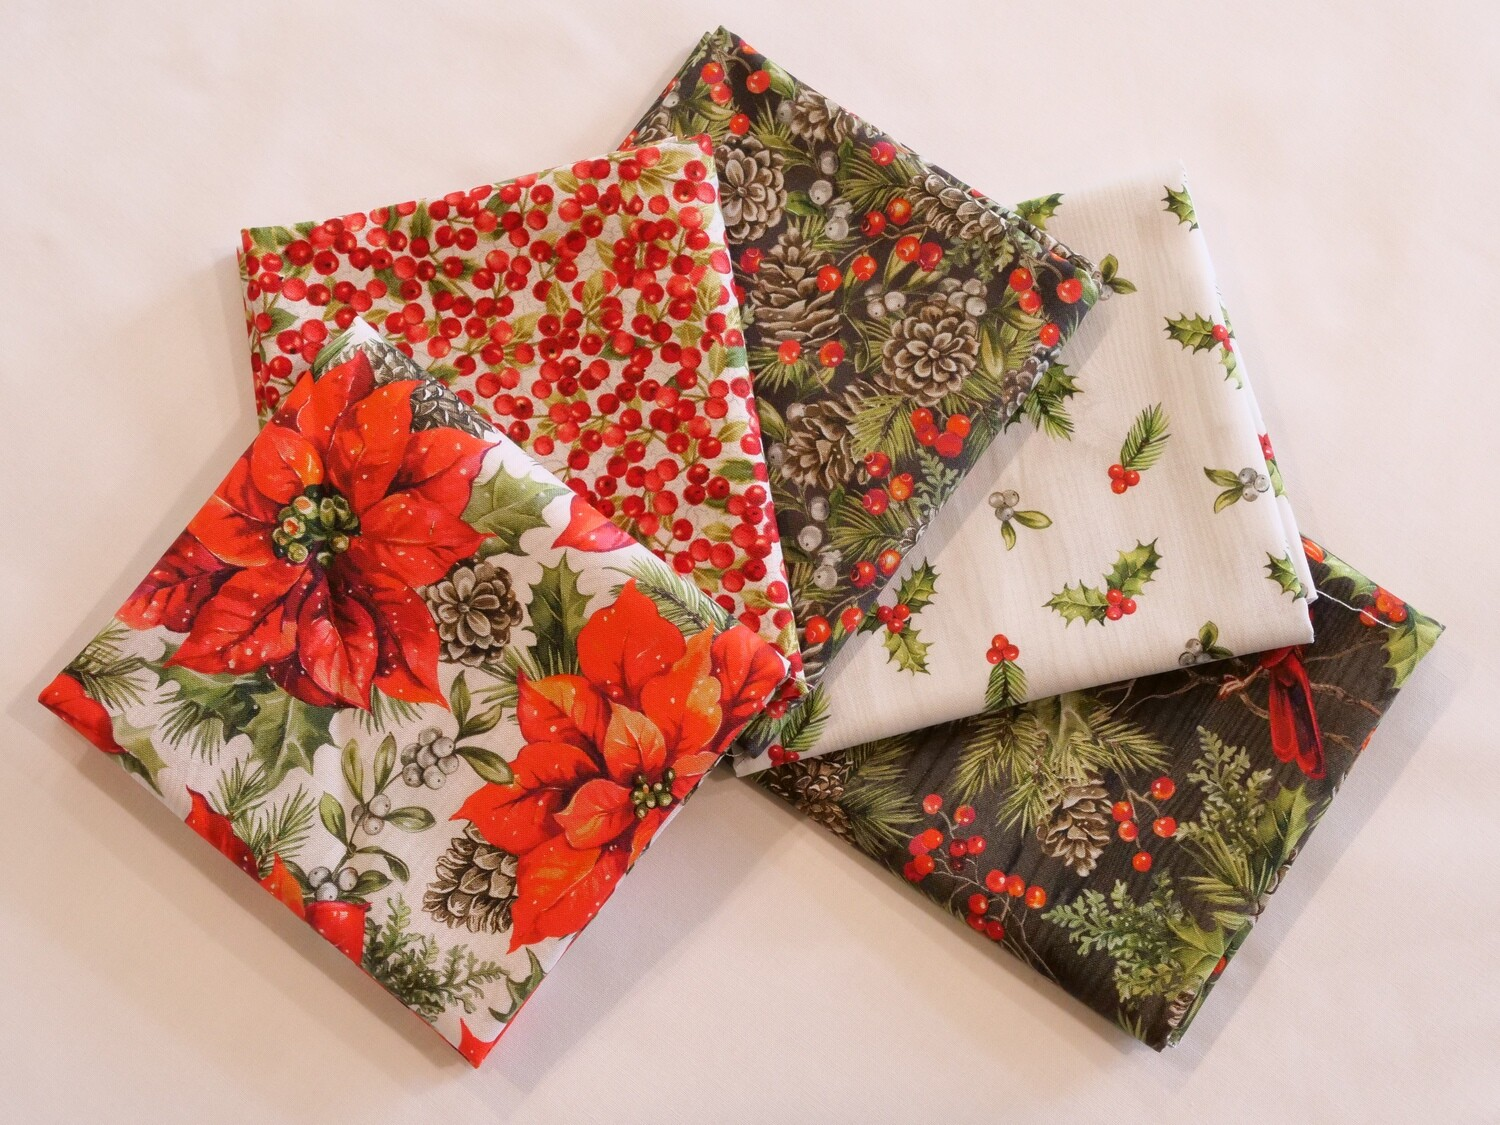 The Scarlet Feather Fat Quarter Bundle